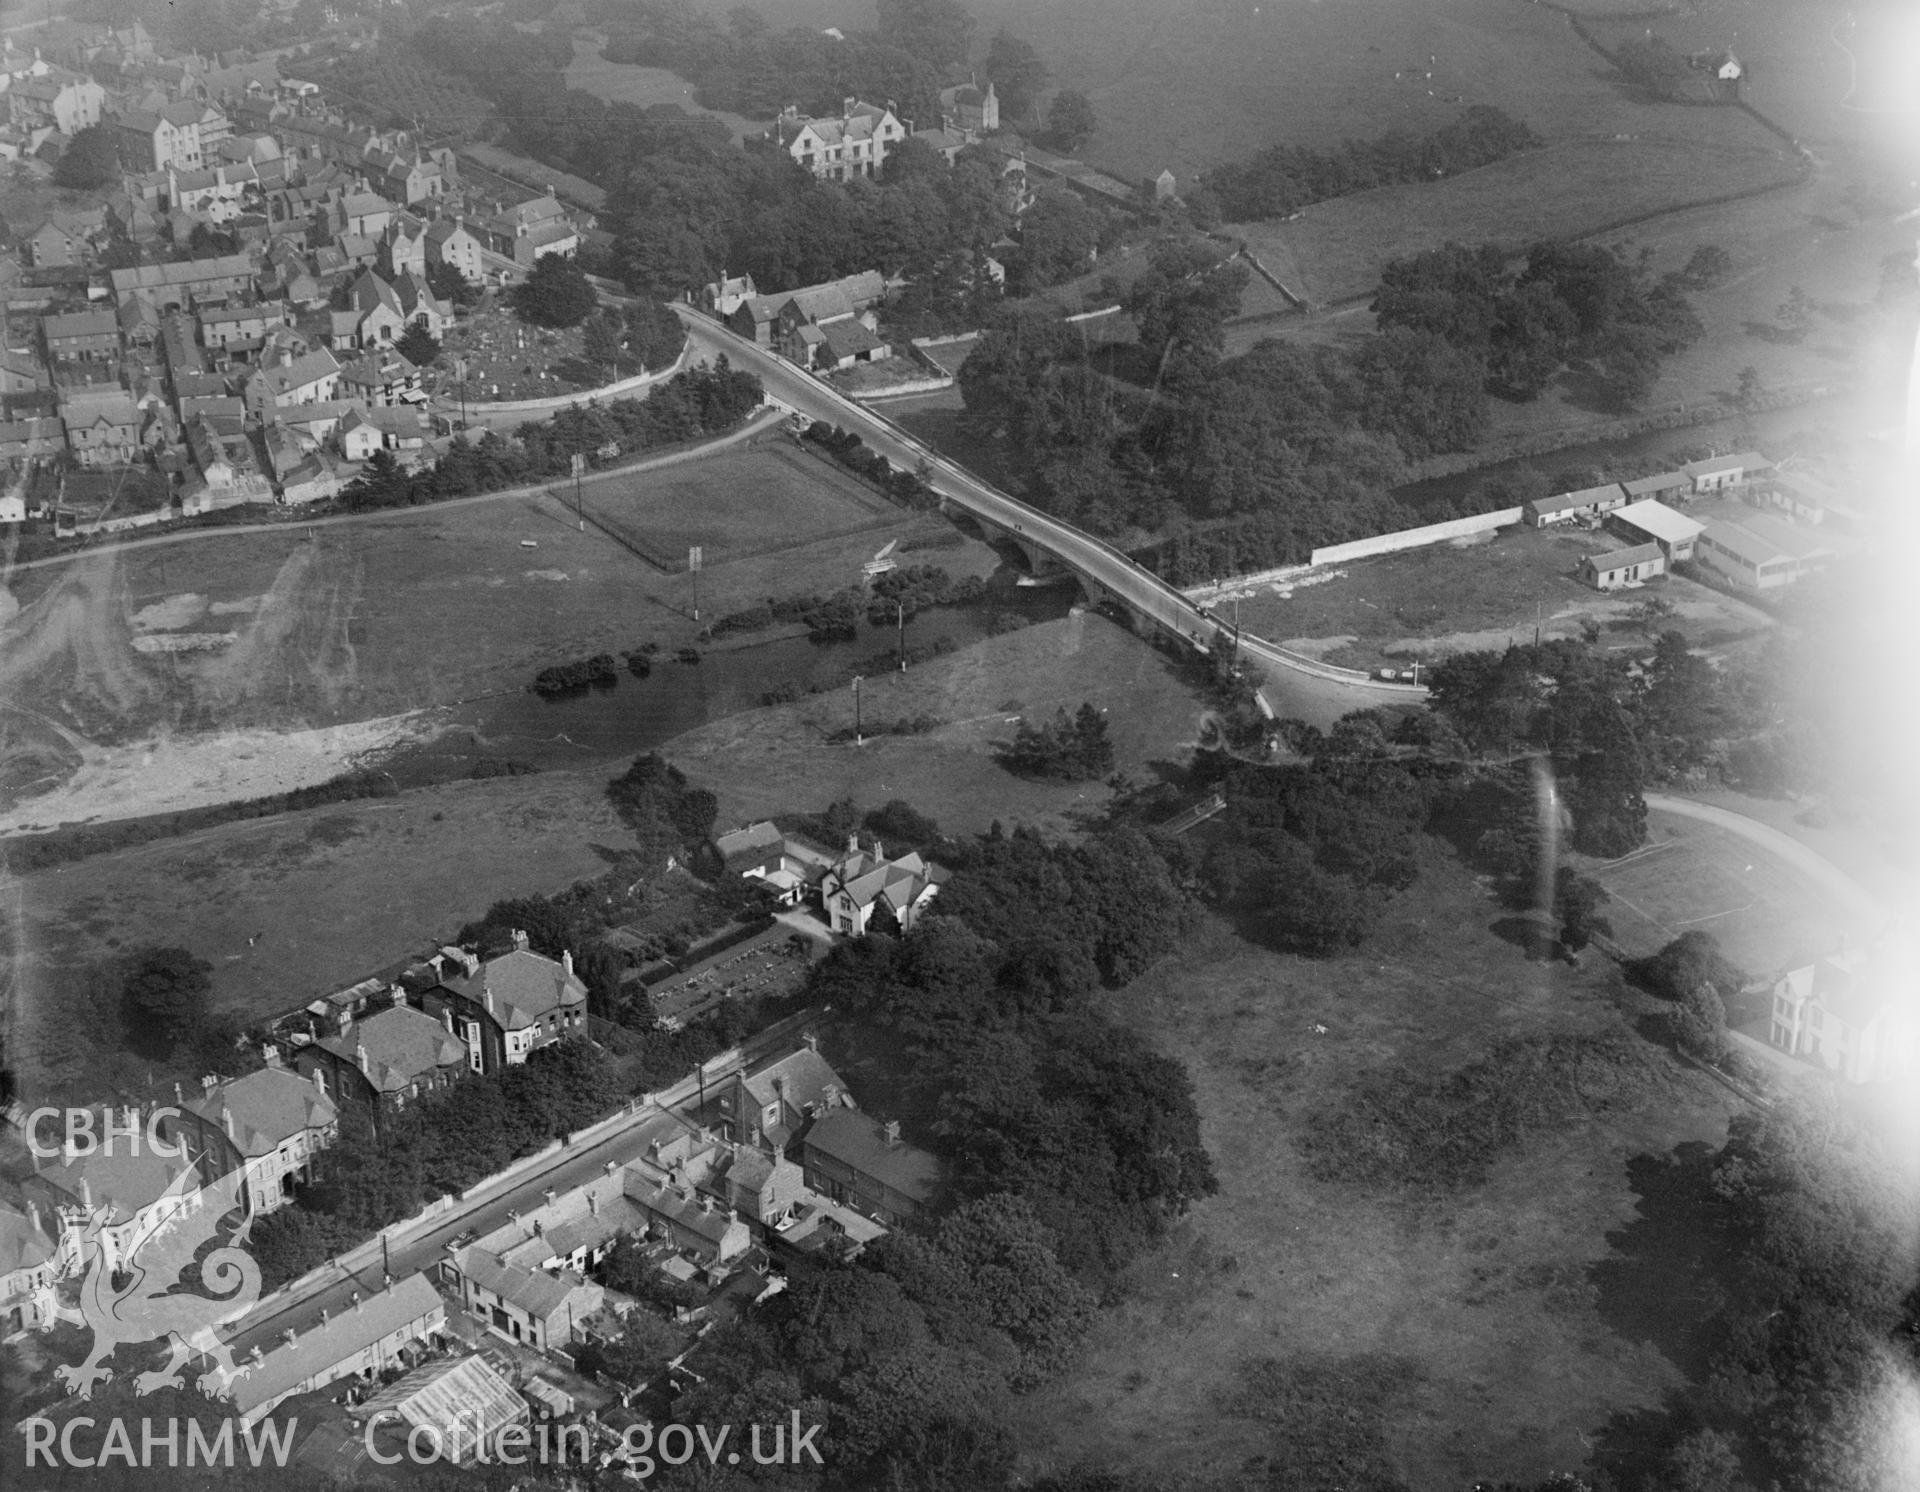 St. Asaph, bridge over river, oblique aerial view. 5?x4? black and white glass plate negative.